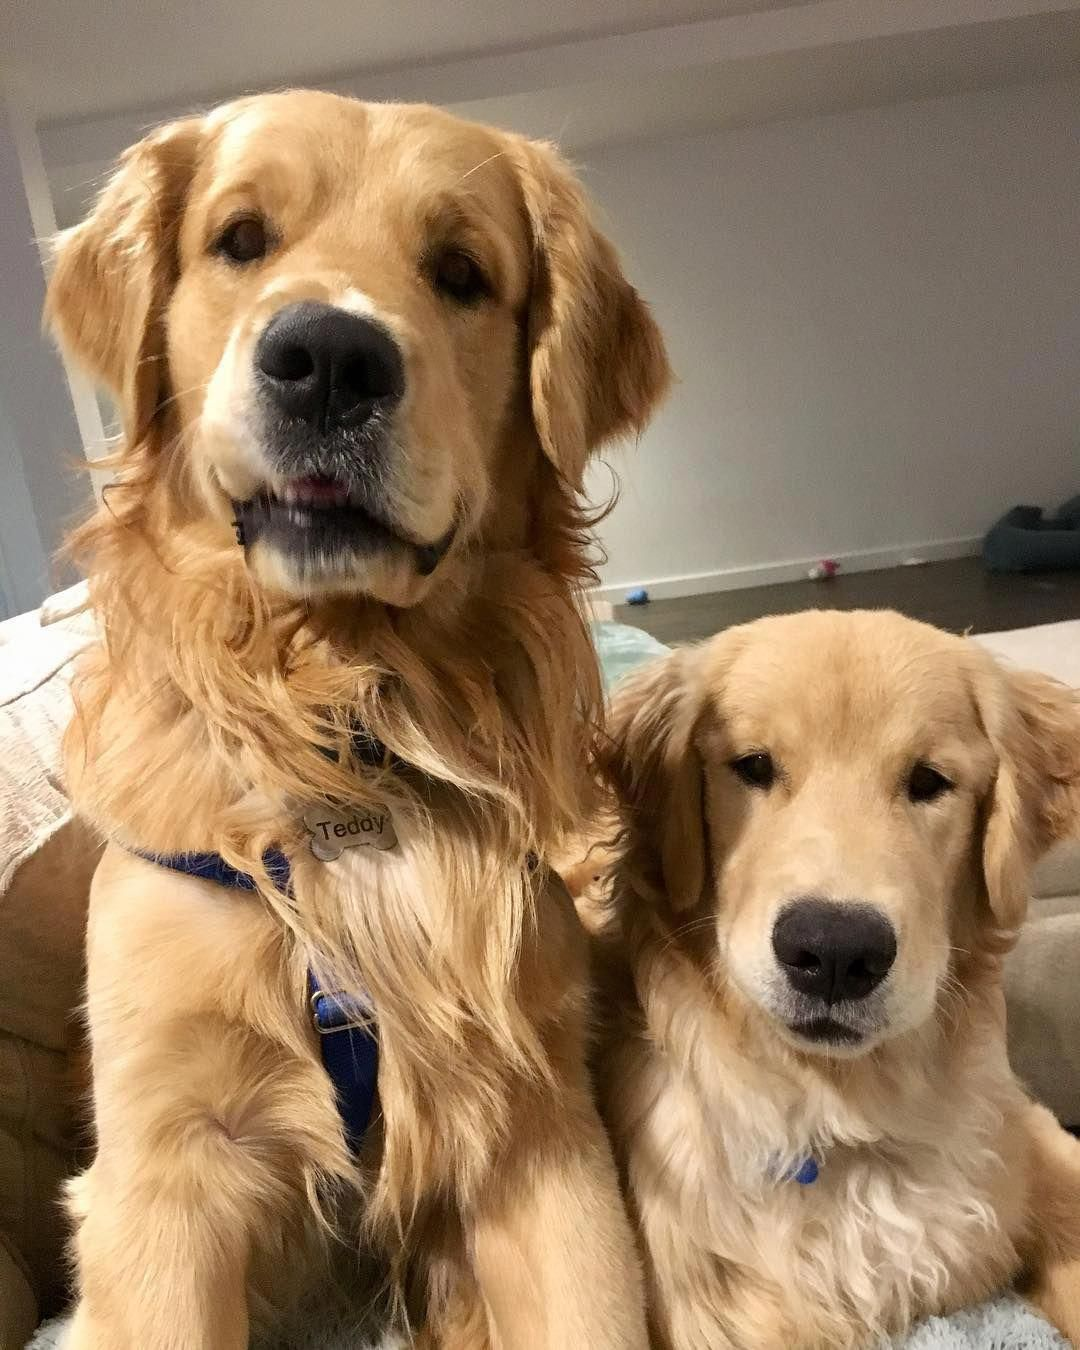 Things We All Enjoy About The Trustworthy Golden Retriever Puppy Goldenretrieverpuppy5months Goldenretrieversp Dogs Golden Retriever Dogs Golden Dog